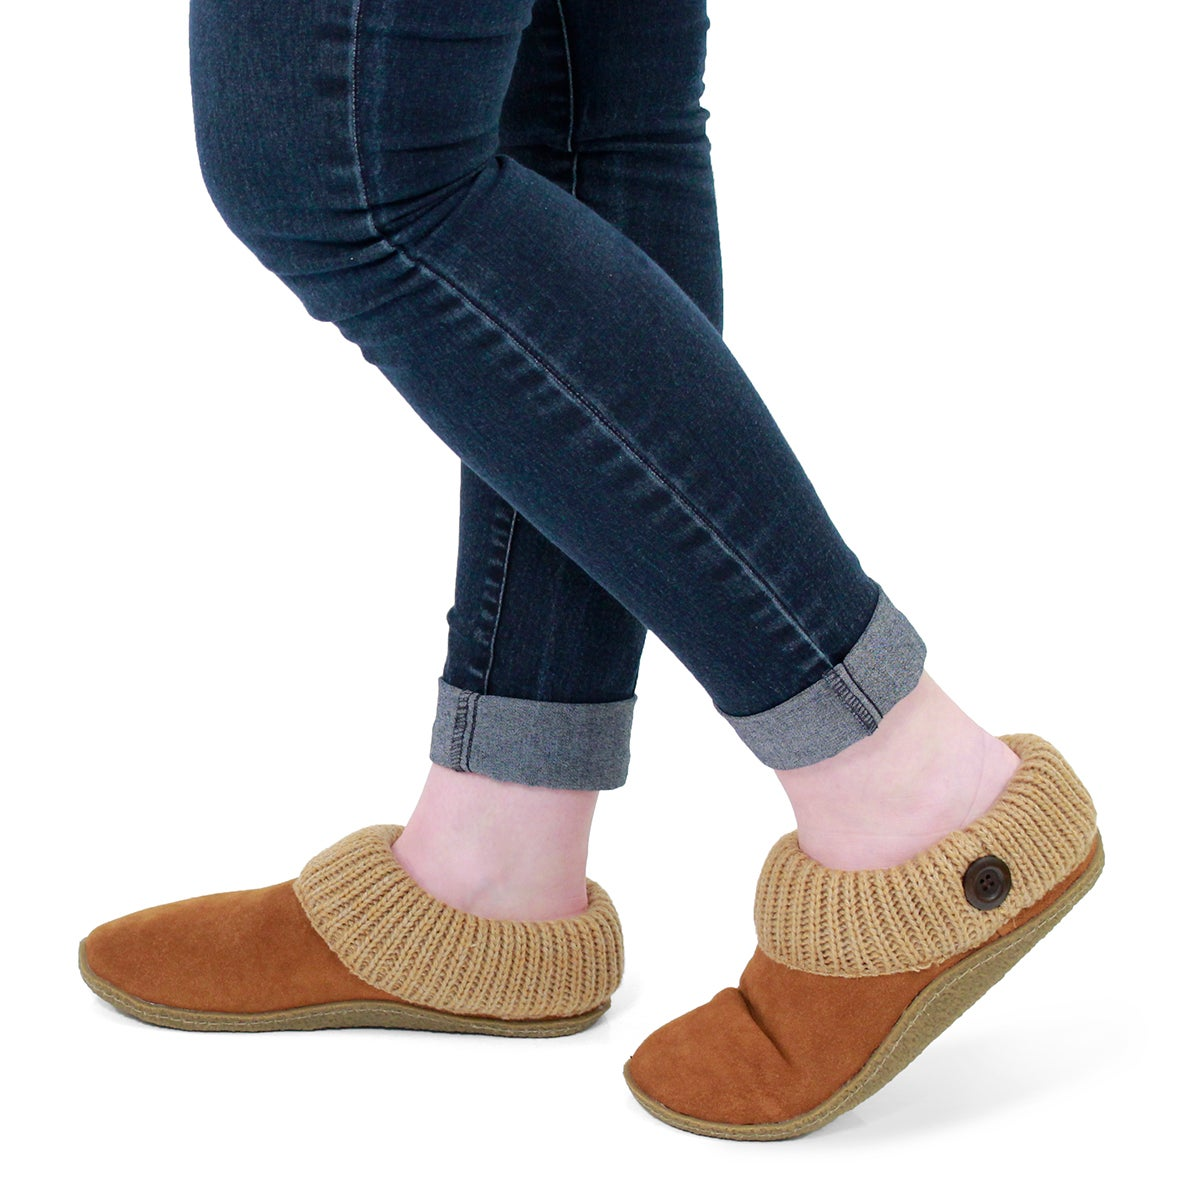 Lds Dini chestnut memory foam slipper